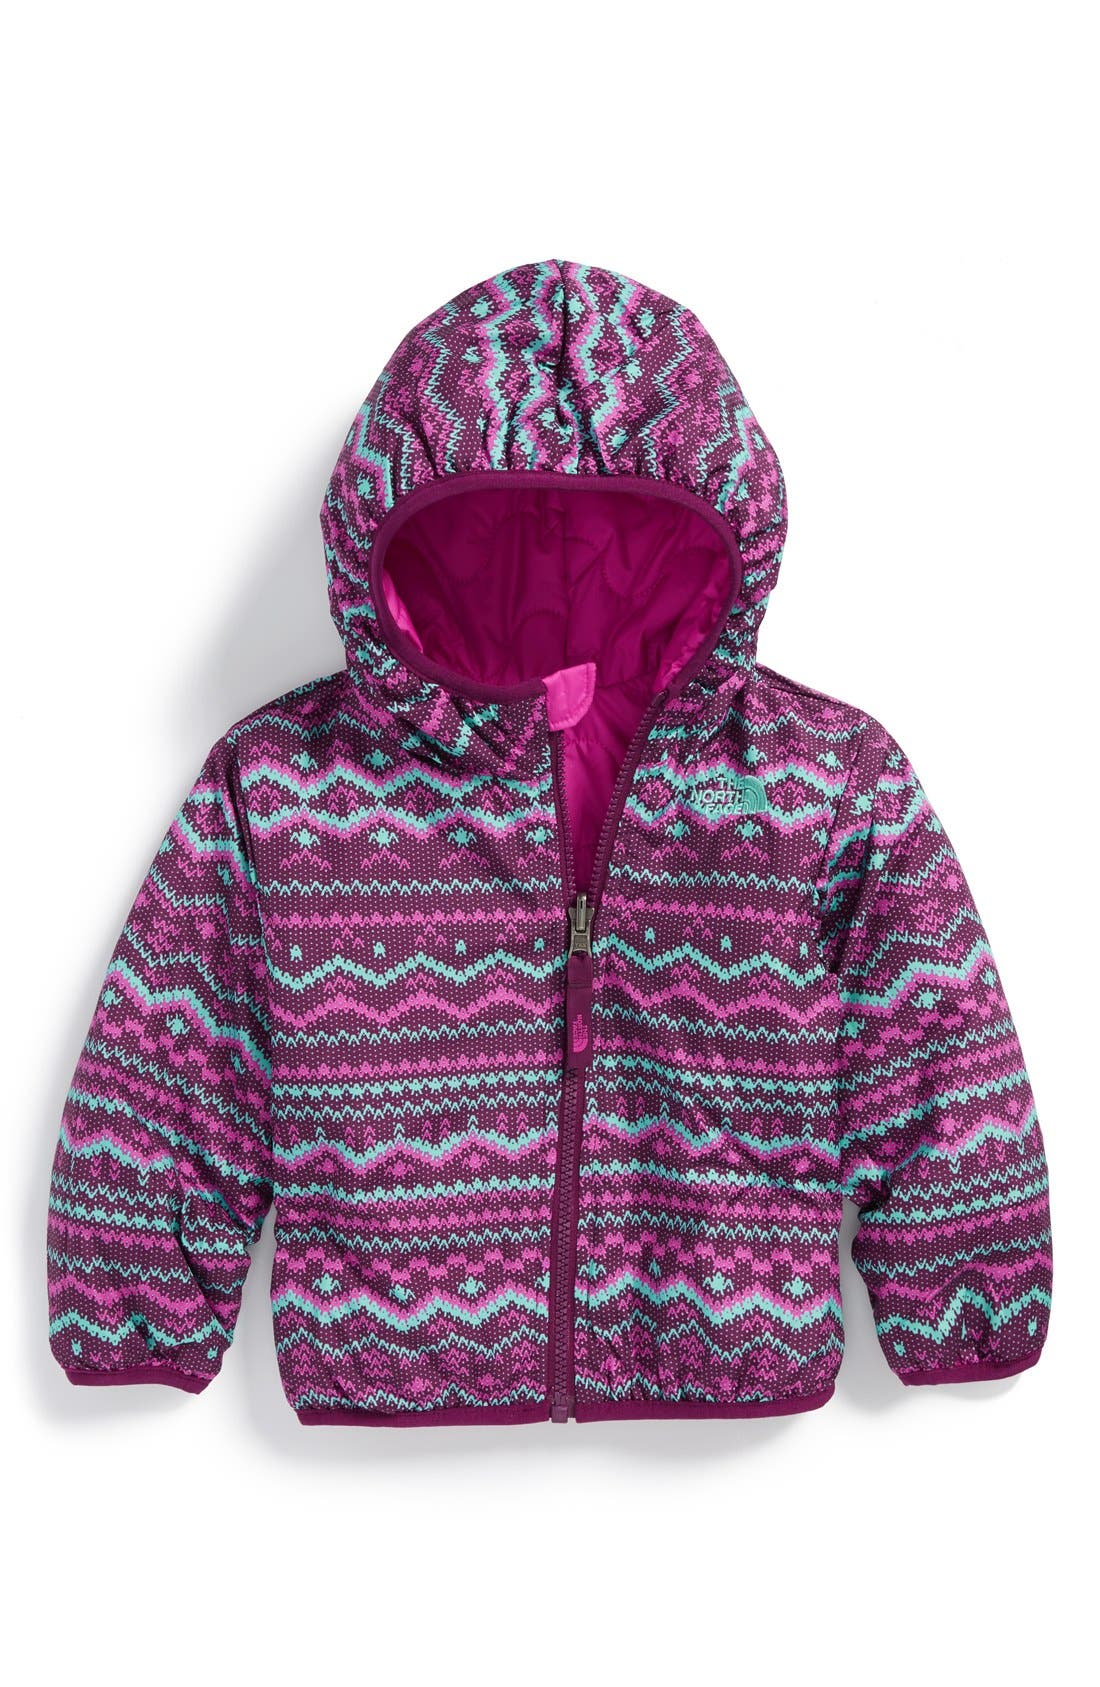 Alternate Image 1 Selected - The North Face 'Perrito' Reversible Jacket (Baby Girls)